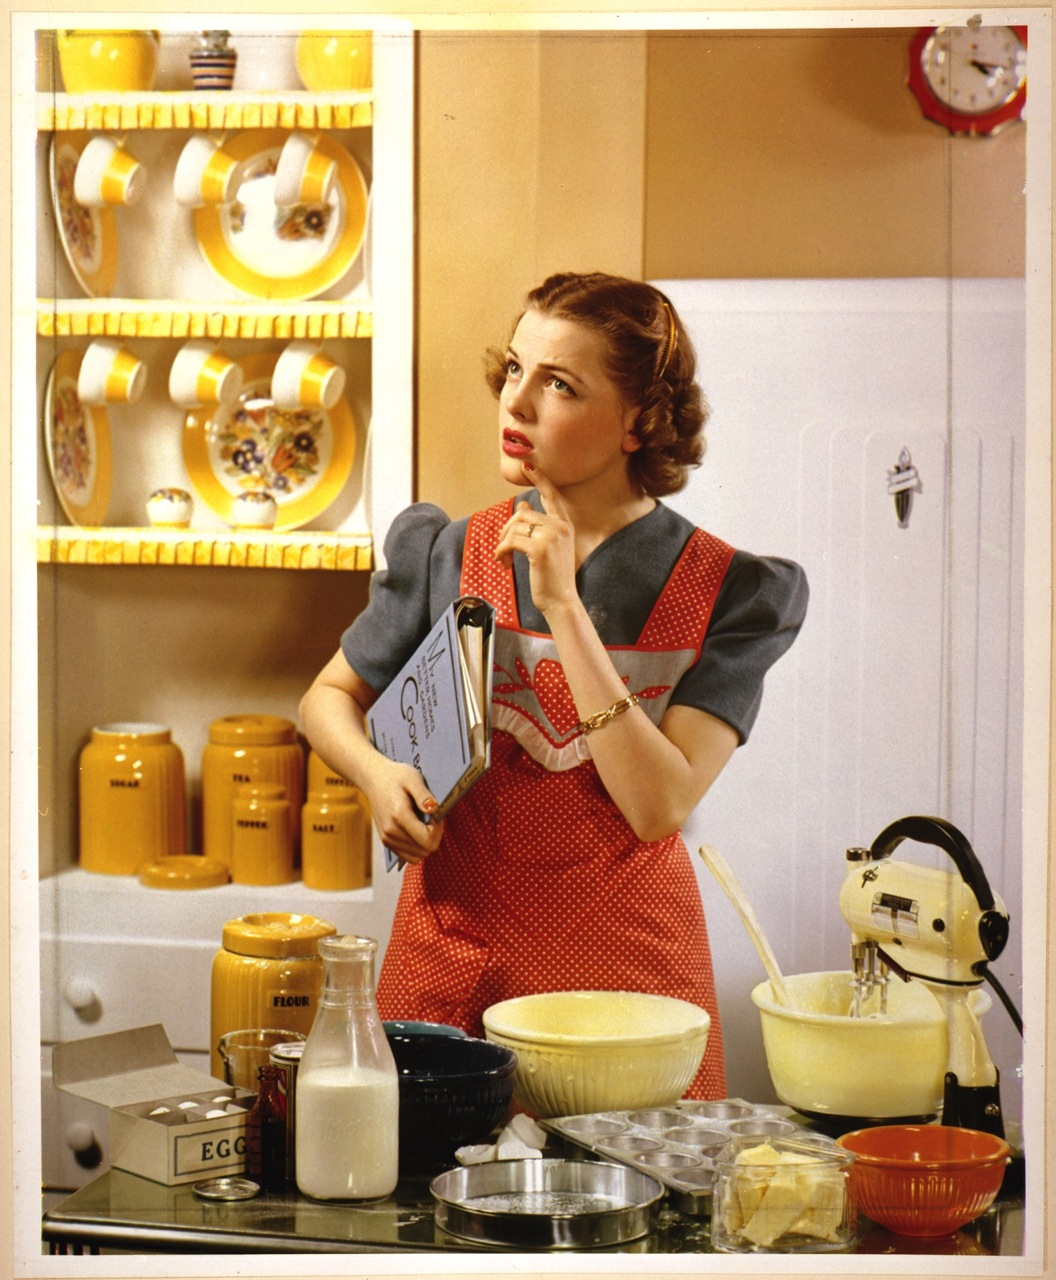 Miss retro 39 s blog inspire your inner housewife for Classic 50s housewife